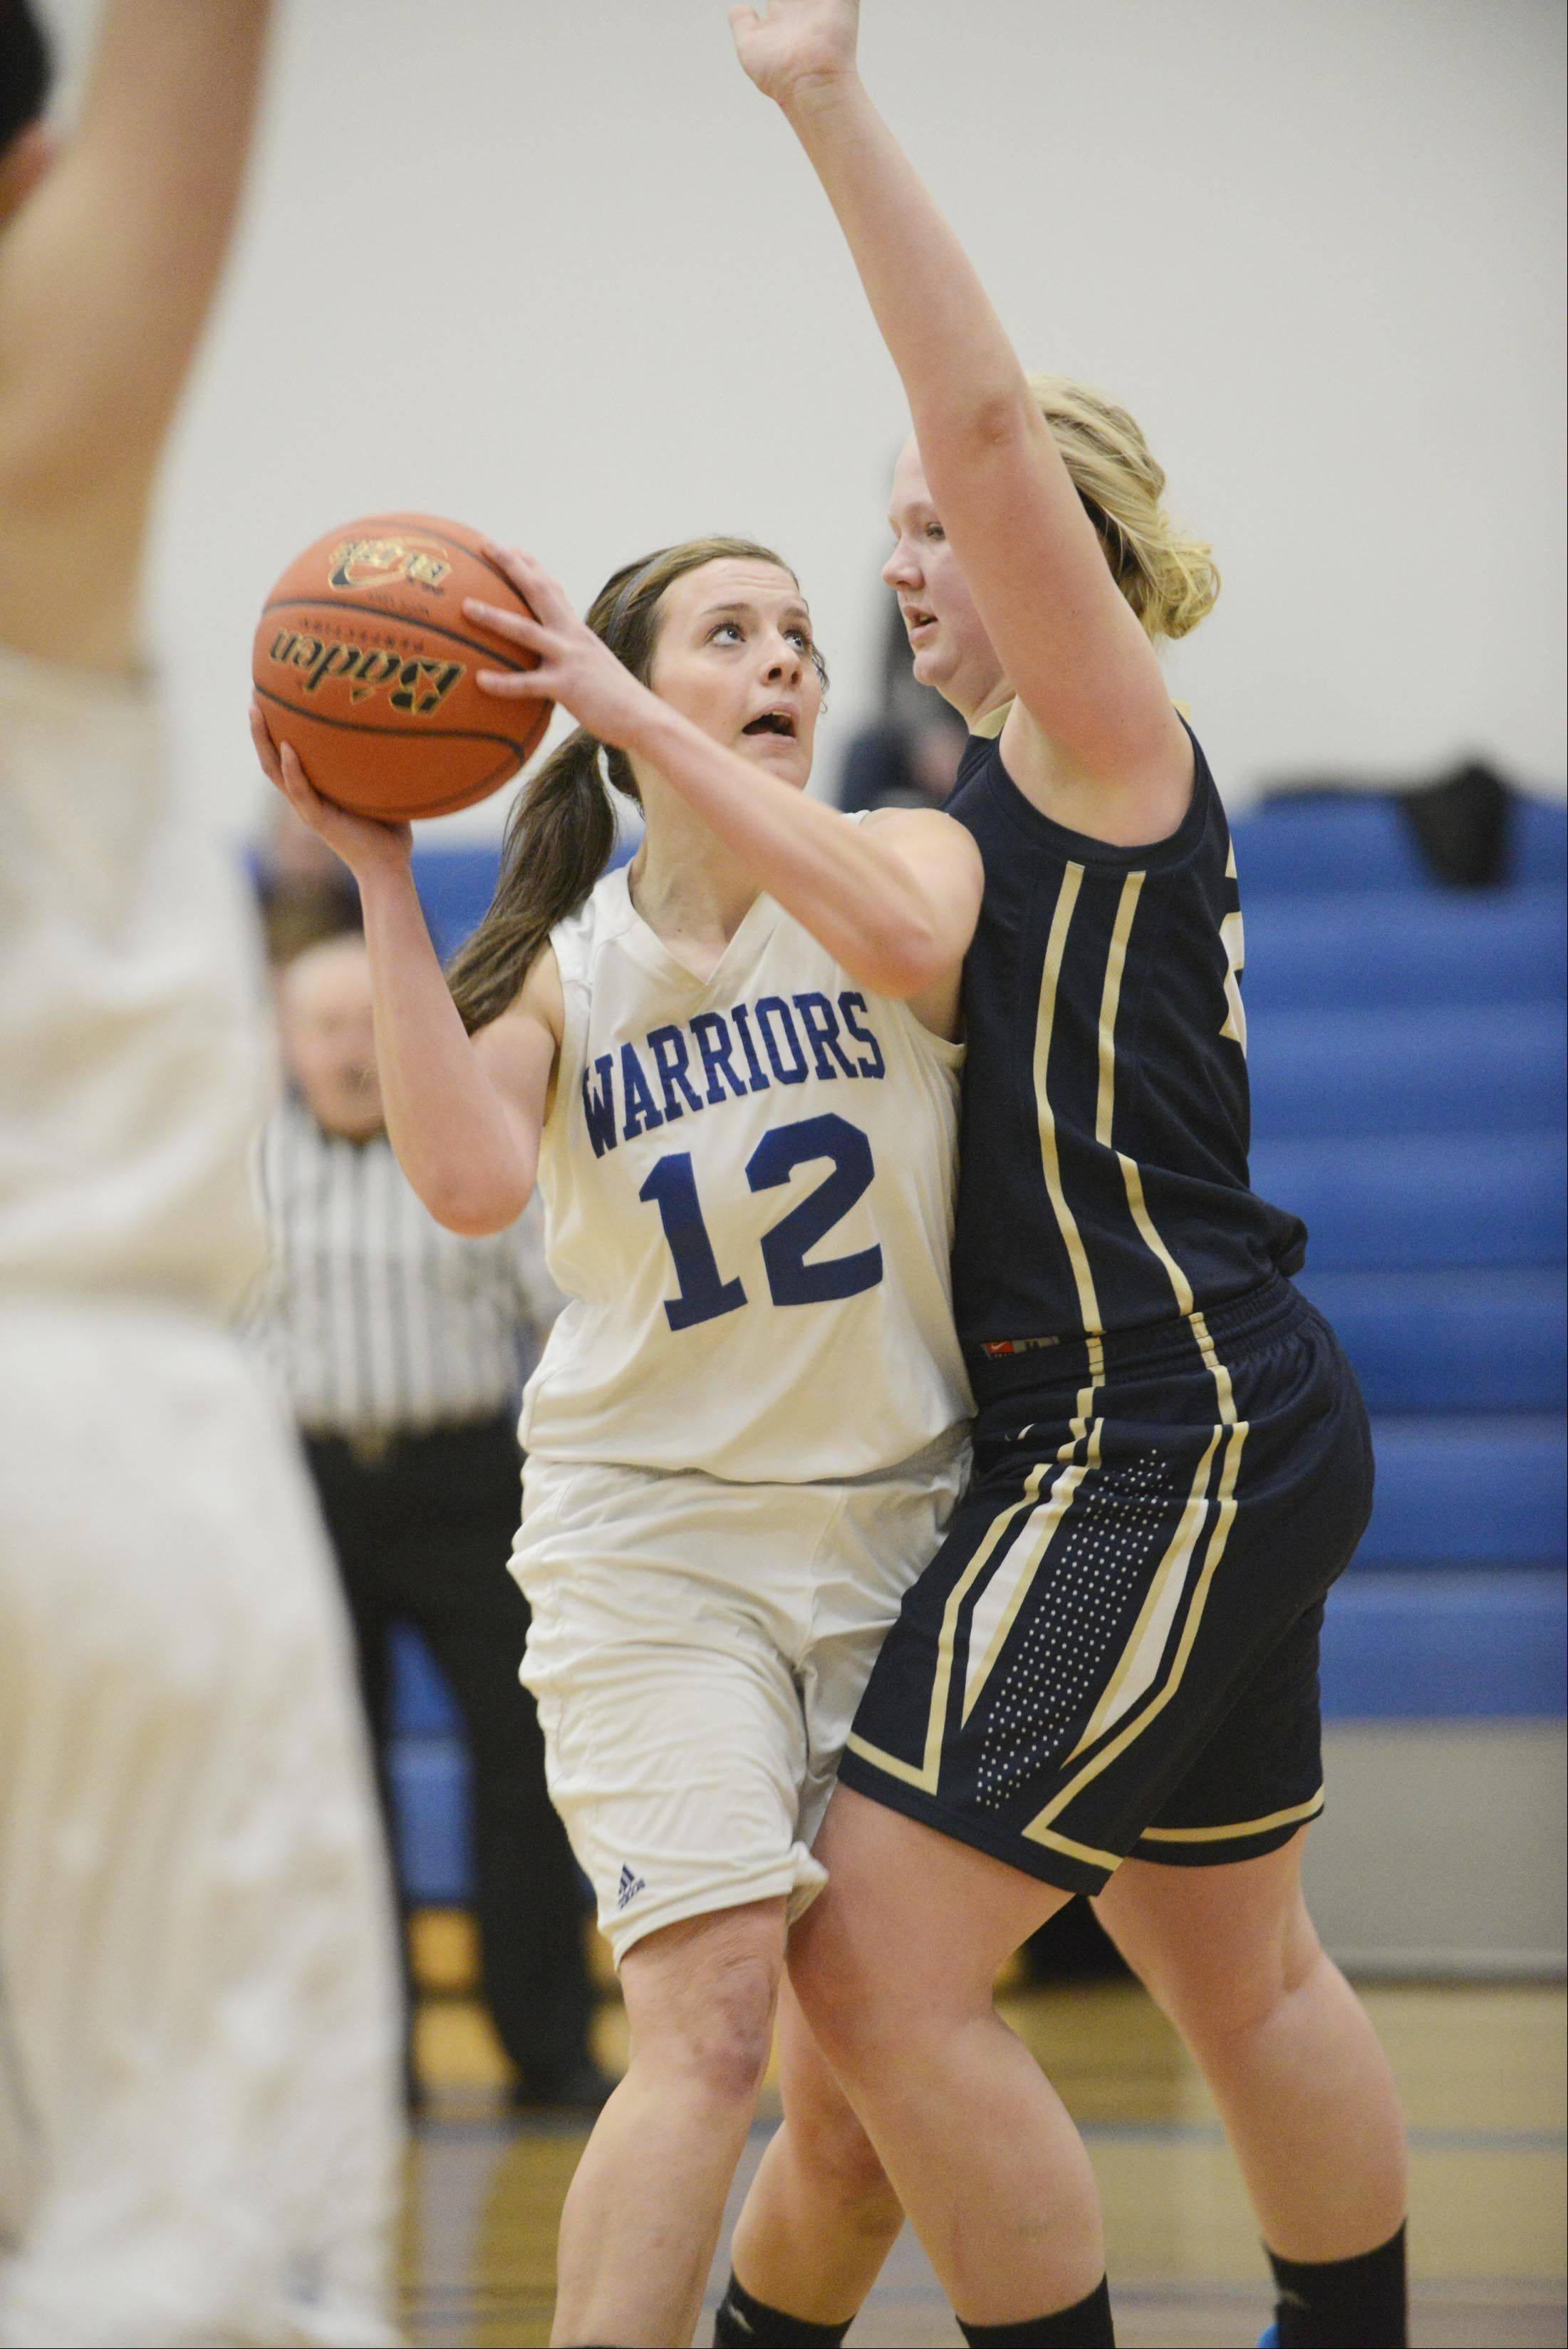 Images from the Harvest Christian vs. Westminster Christian girls basketball game Monday, January 20, 2014 in Elgin.